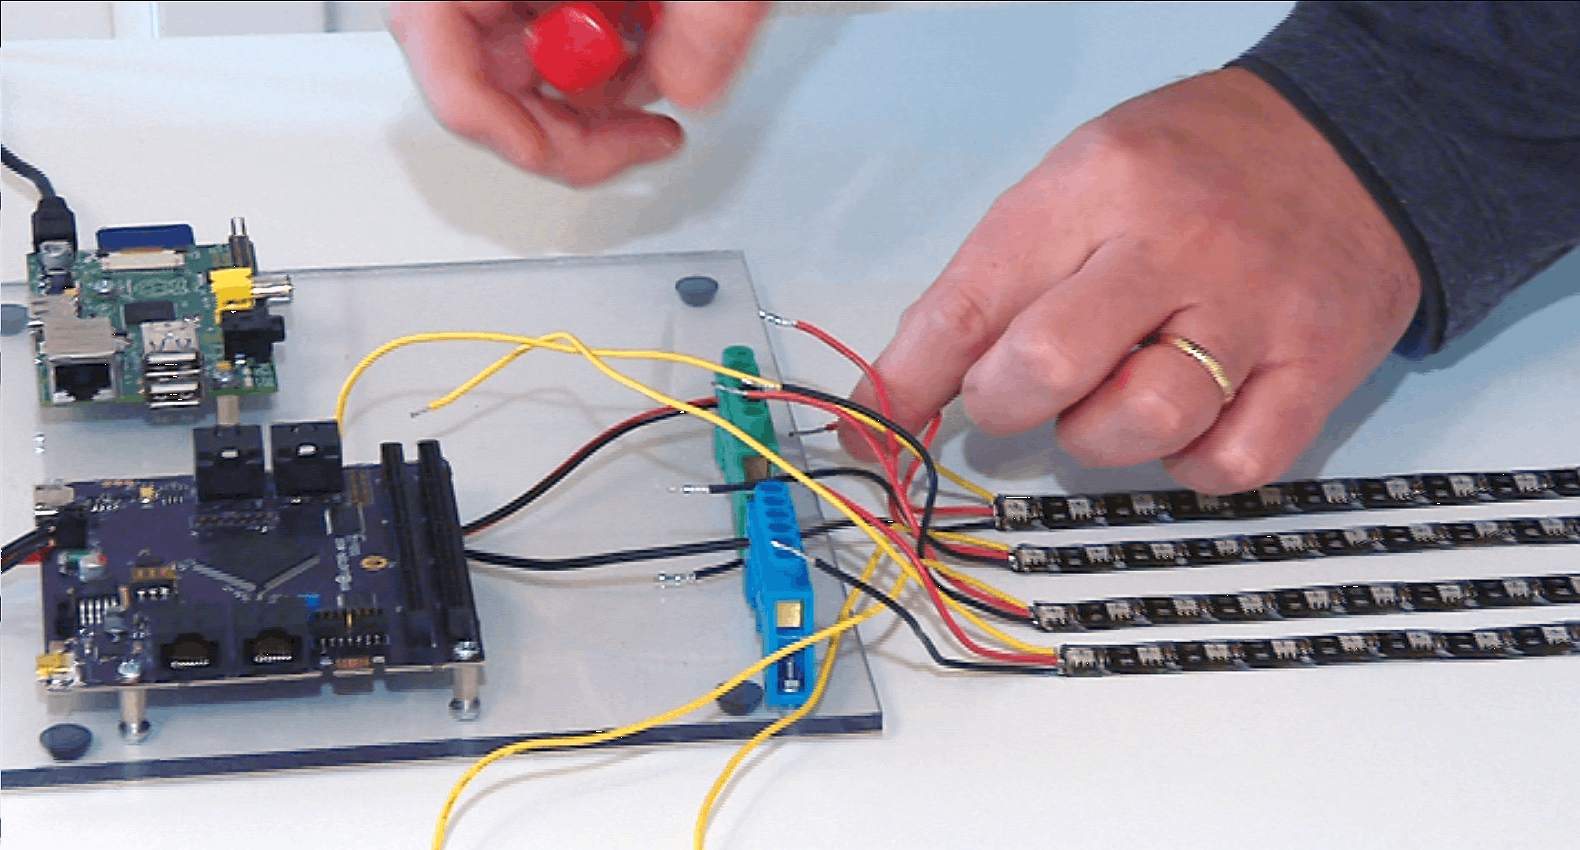 Figure 5: Example Wiring Terminal Blocks for Power Distribution